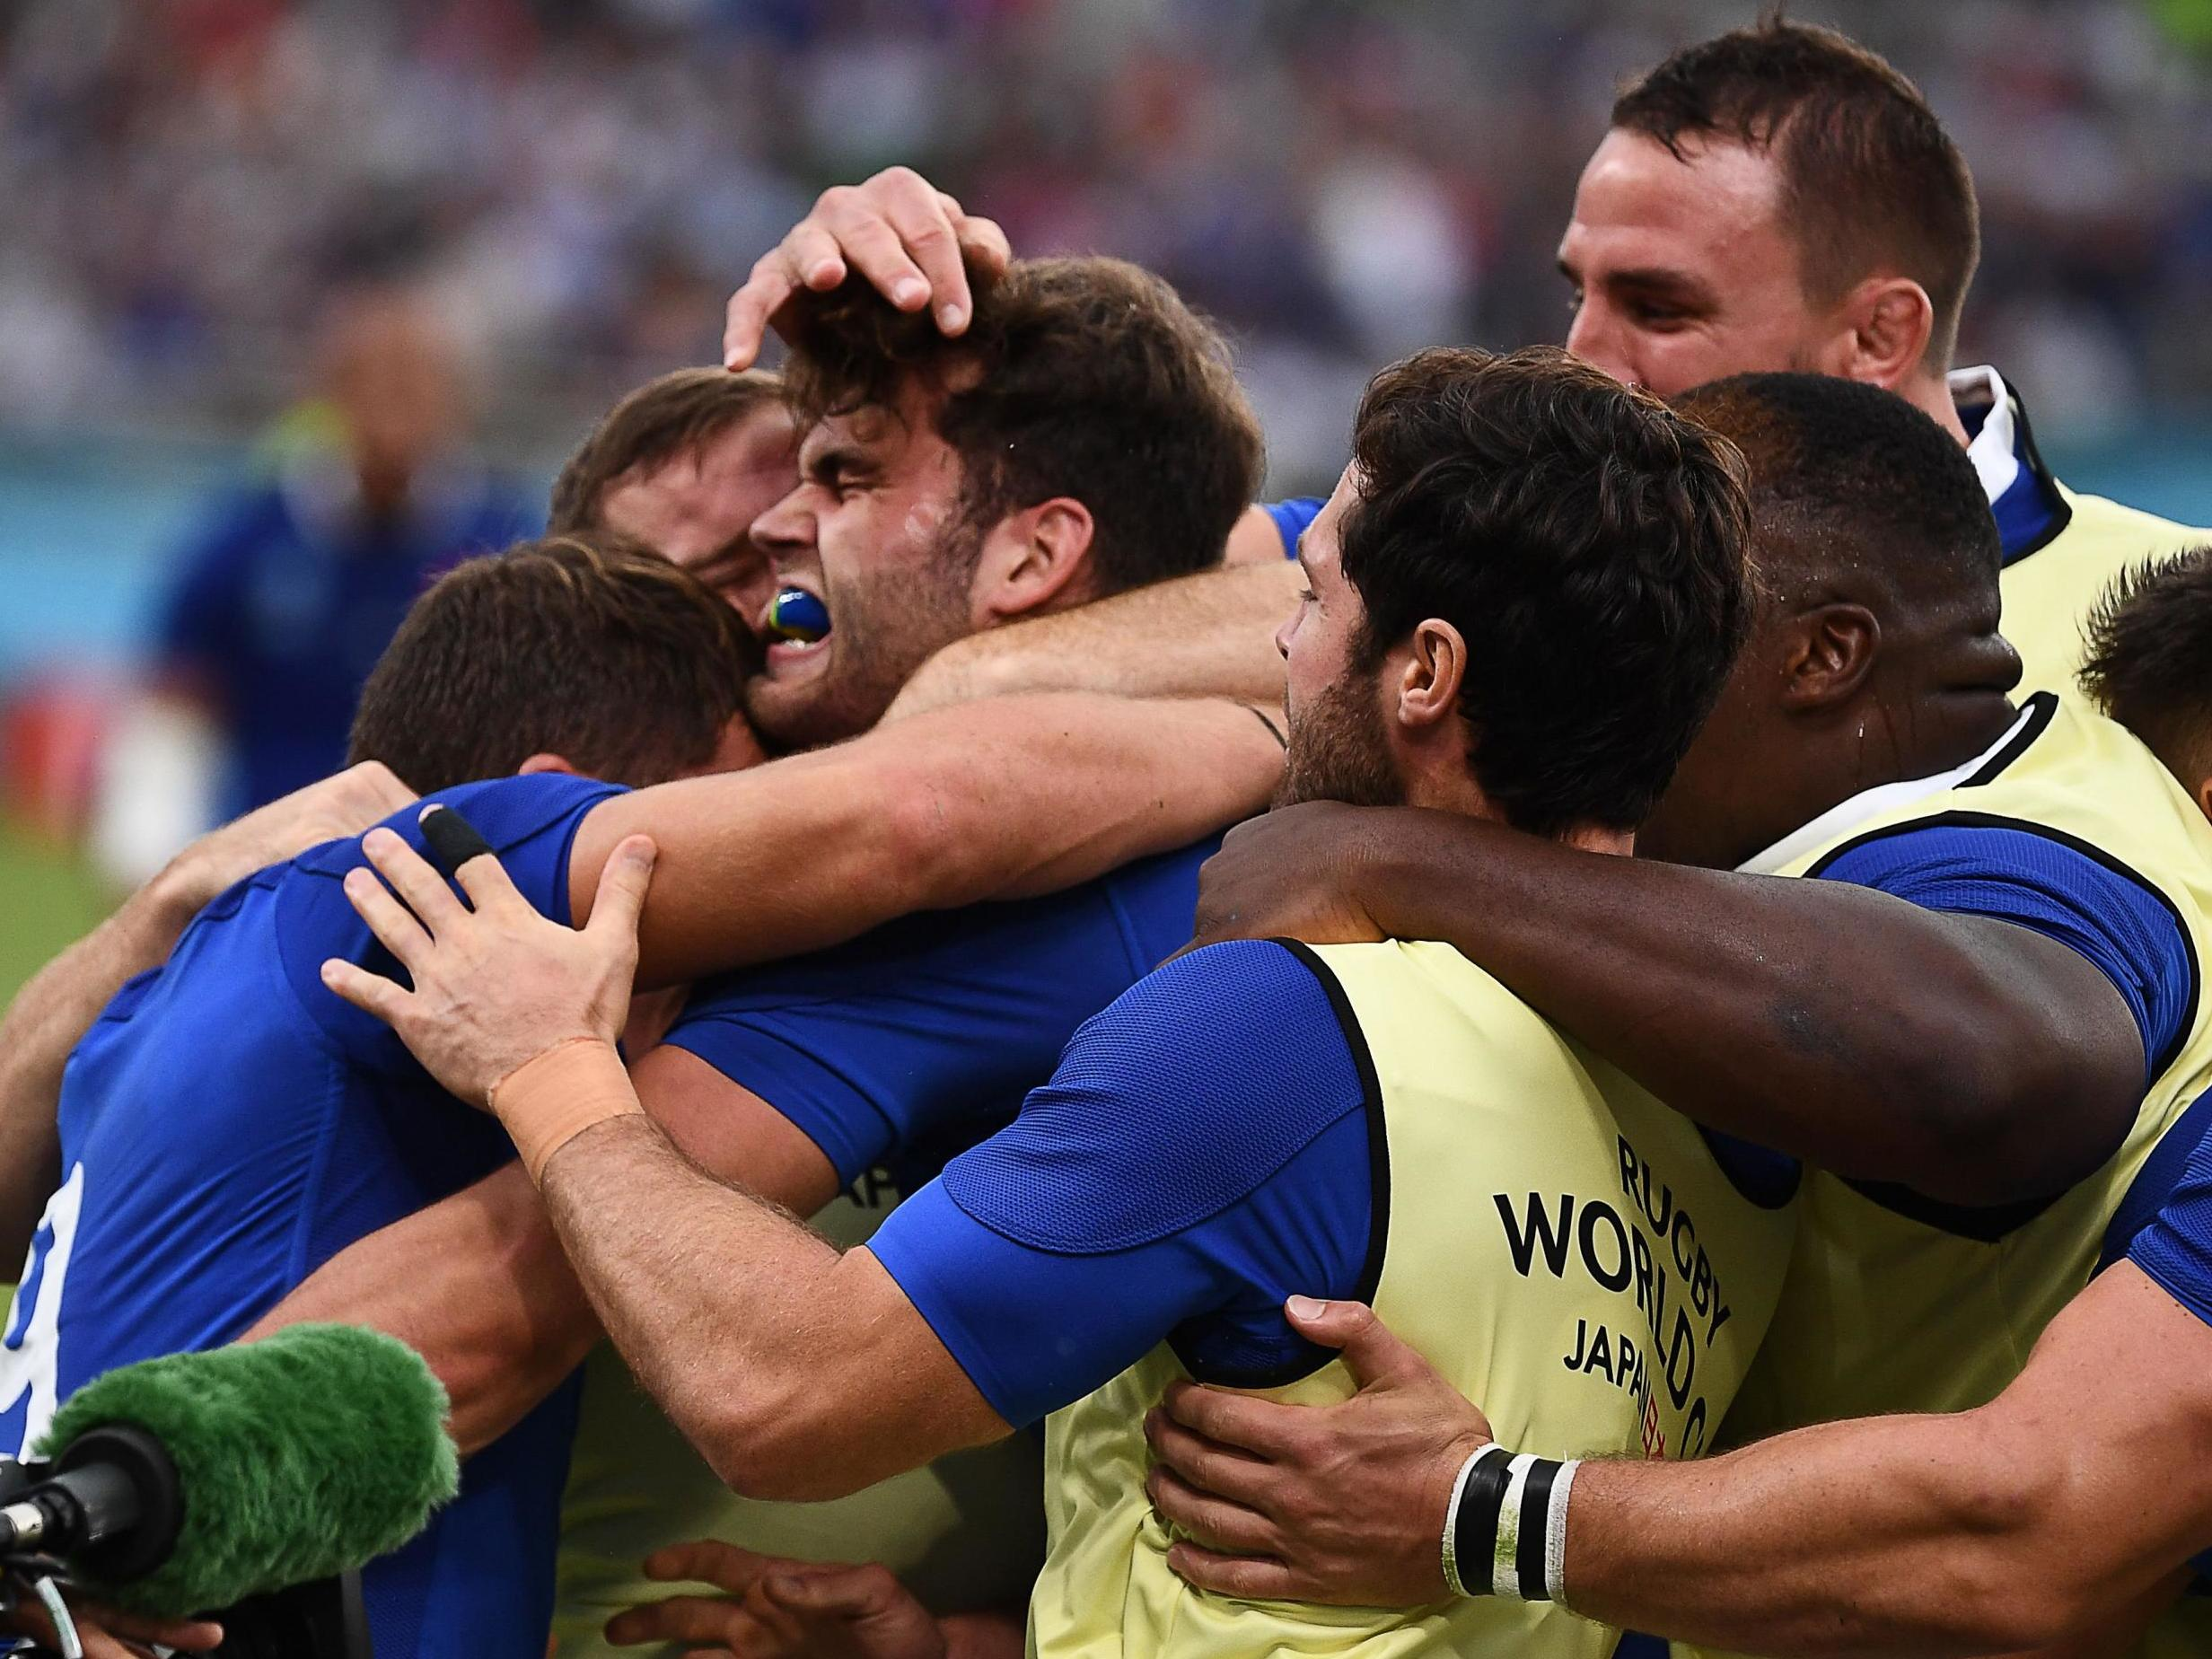 Rugby World Cup 2019: France endure nerve-shredding second-half but eventually see off Argentina